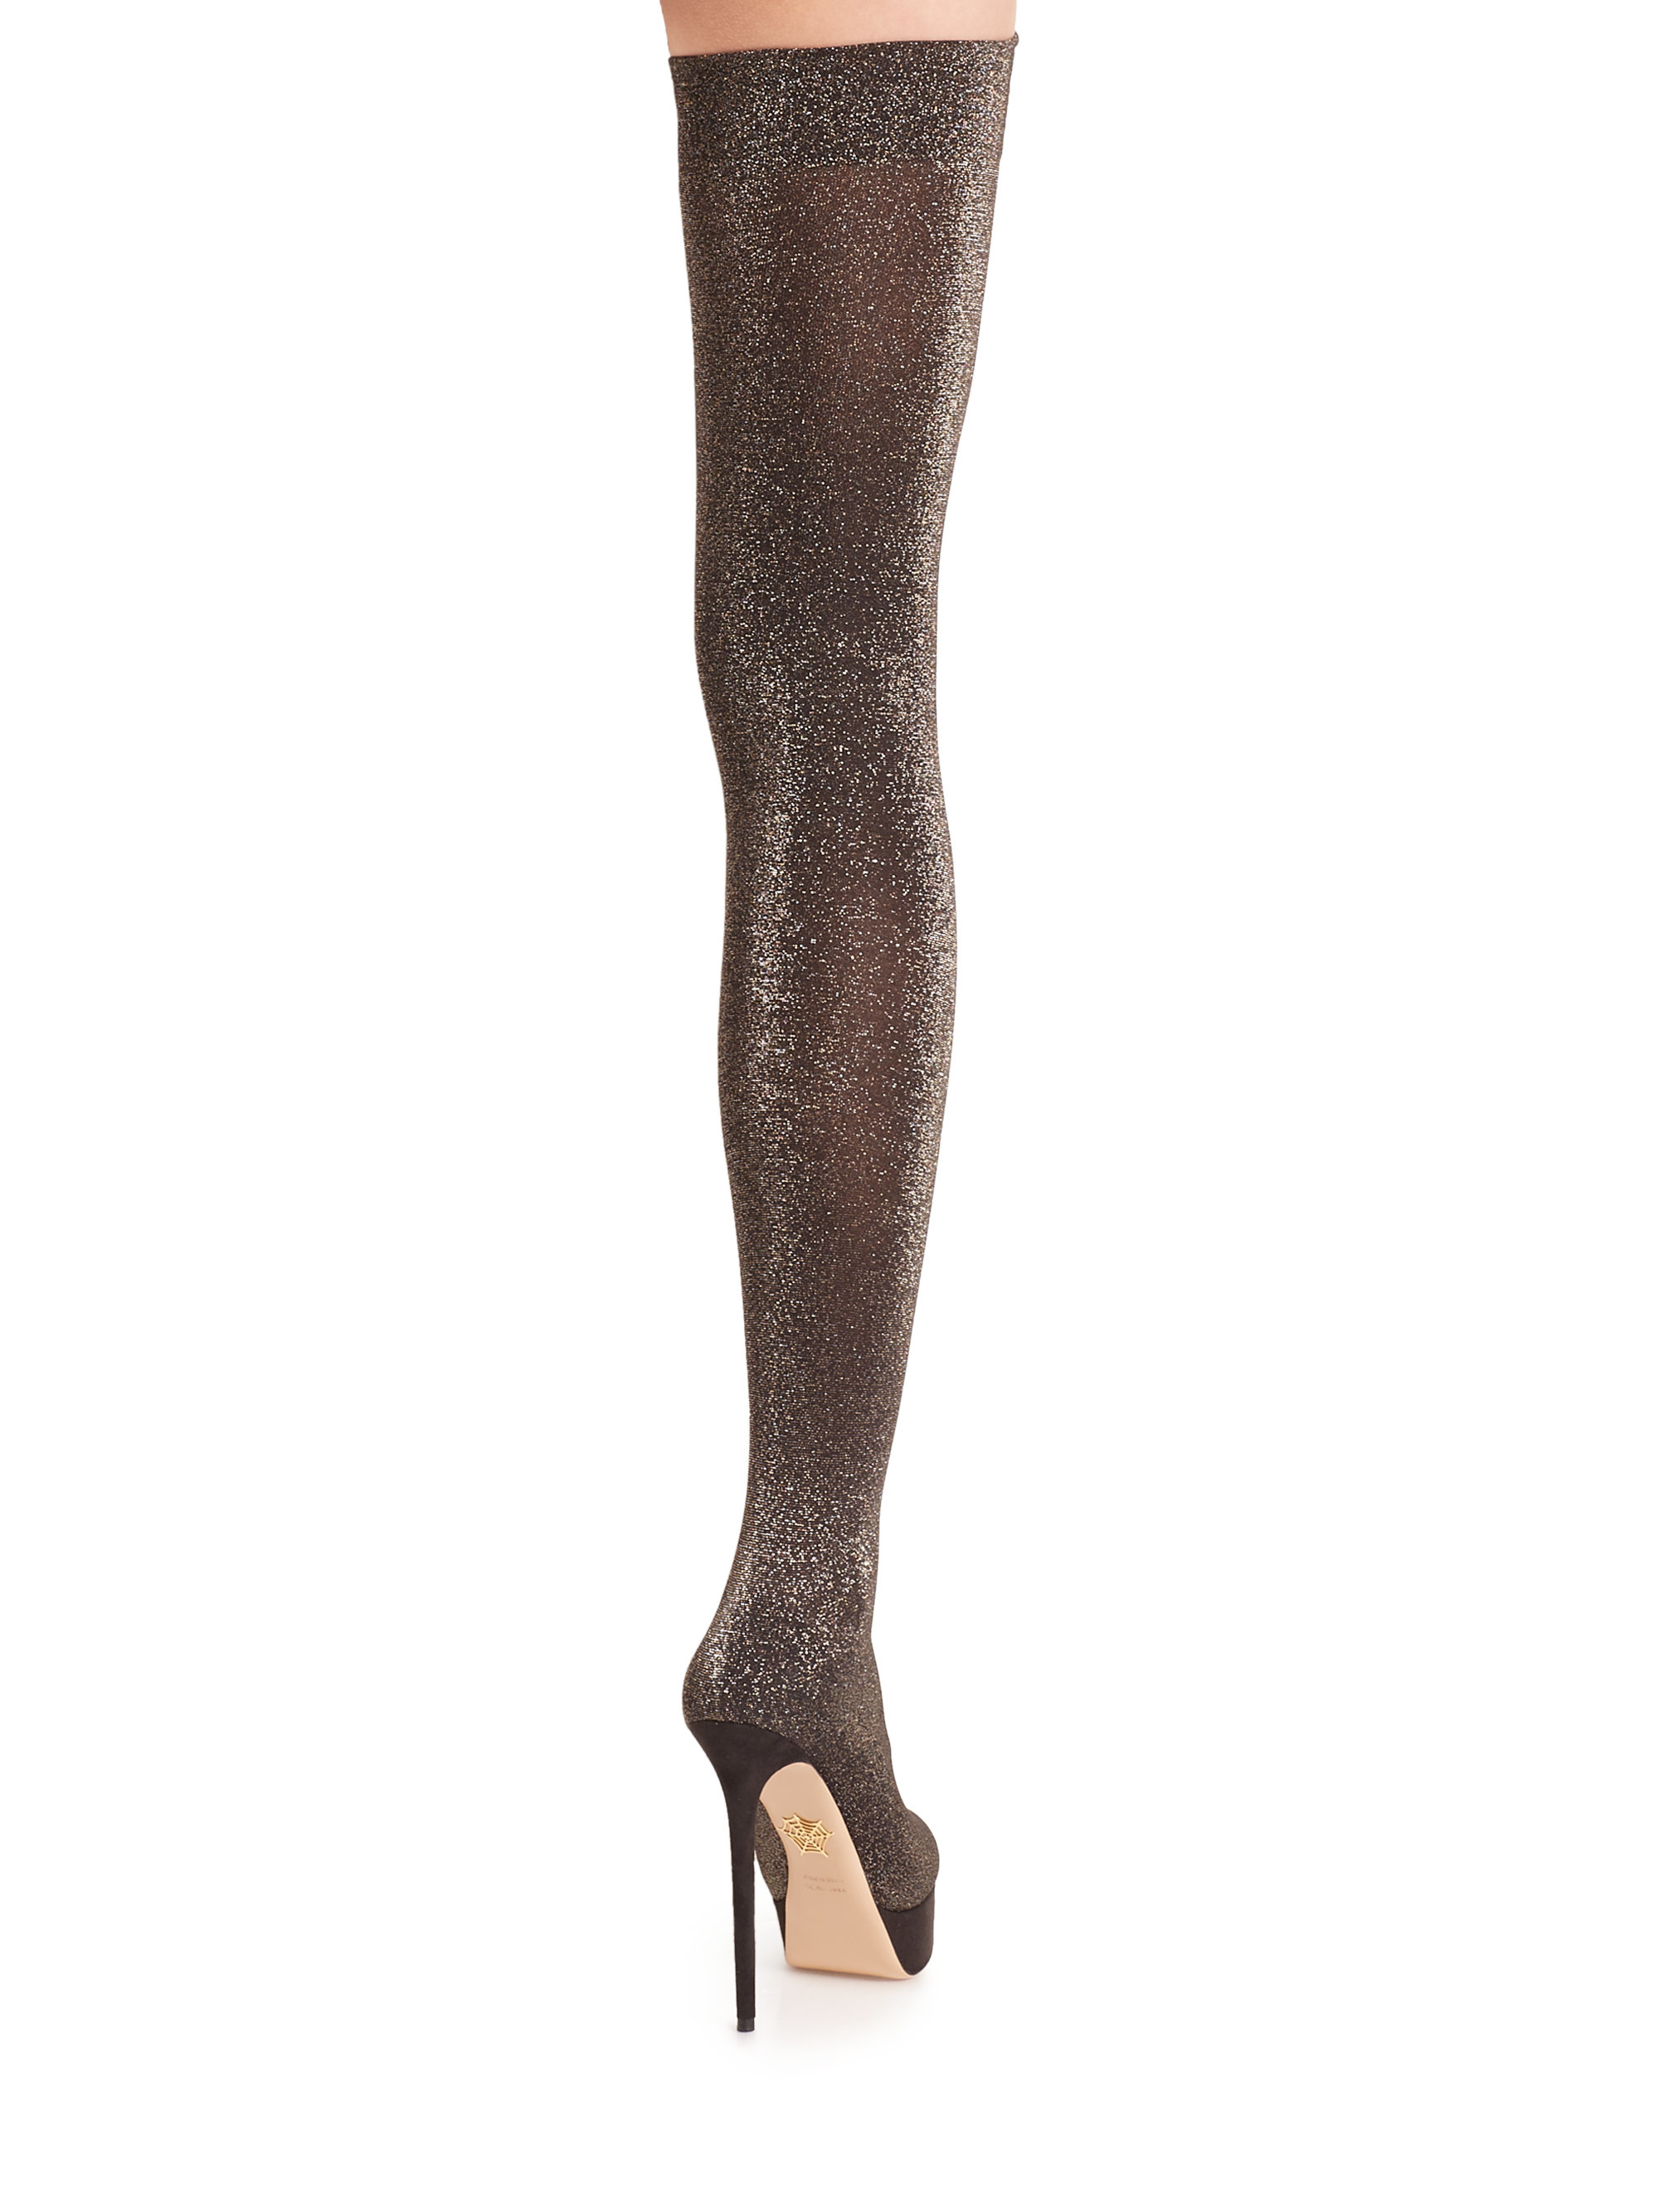 largest supplier cheap price Charlotte Olympia 'More Is More' boots buy cheap store buy cheap best wholesale best place for sale qTtFqFoli